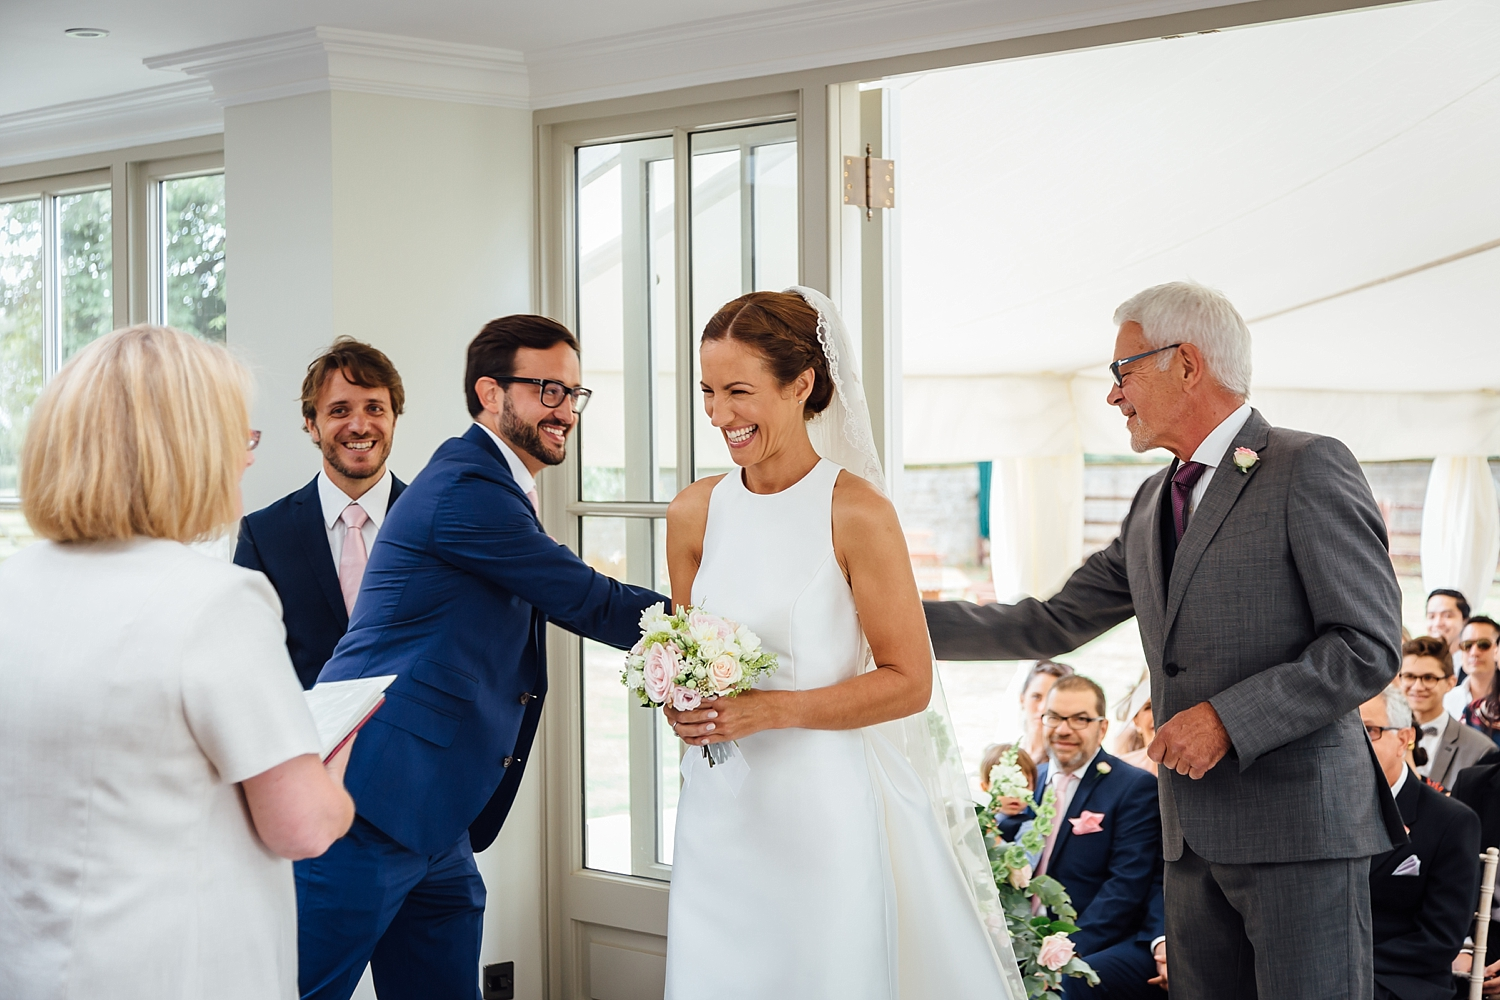 alexvictor-blog-natural-fun-relaxed-documentary-charlotte-jopling-wedding-photography-northamptonshire-home-garden-country-summer-27.jpg